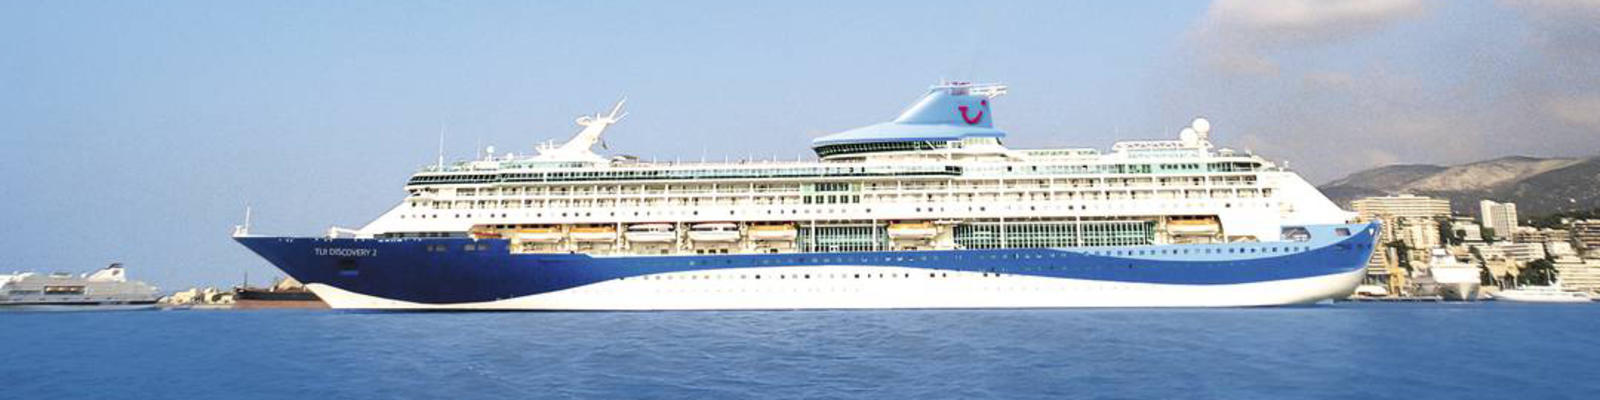 Marella Discovery 2 Cruise Ship Review Photos Amp Departure Ports On Cruise Critic